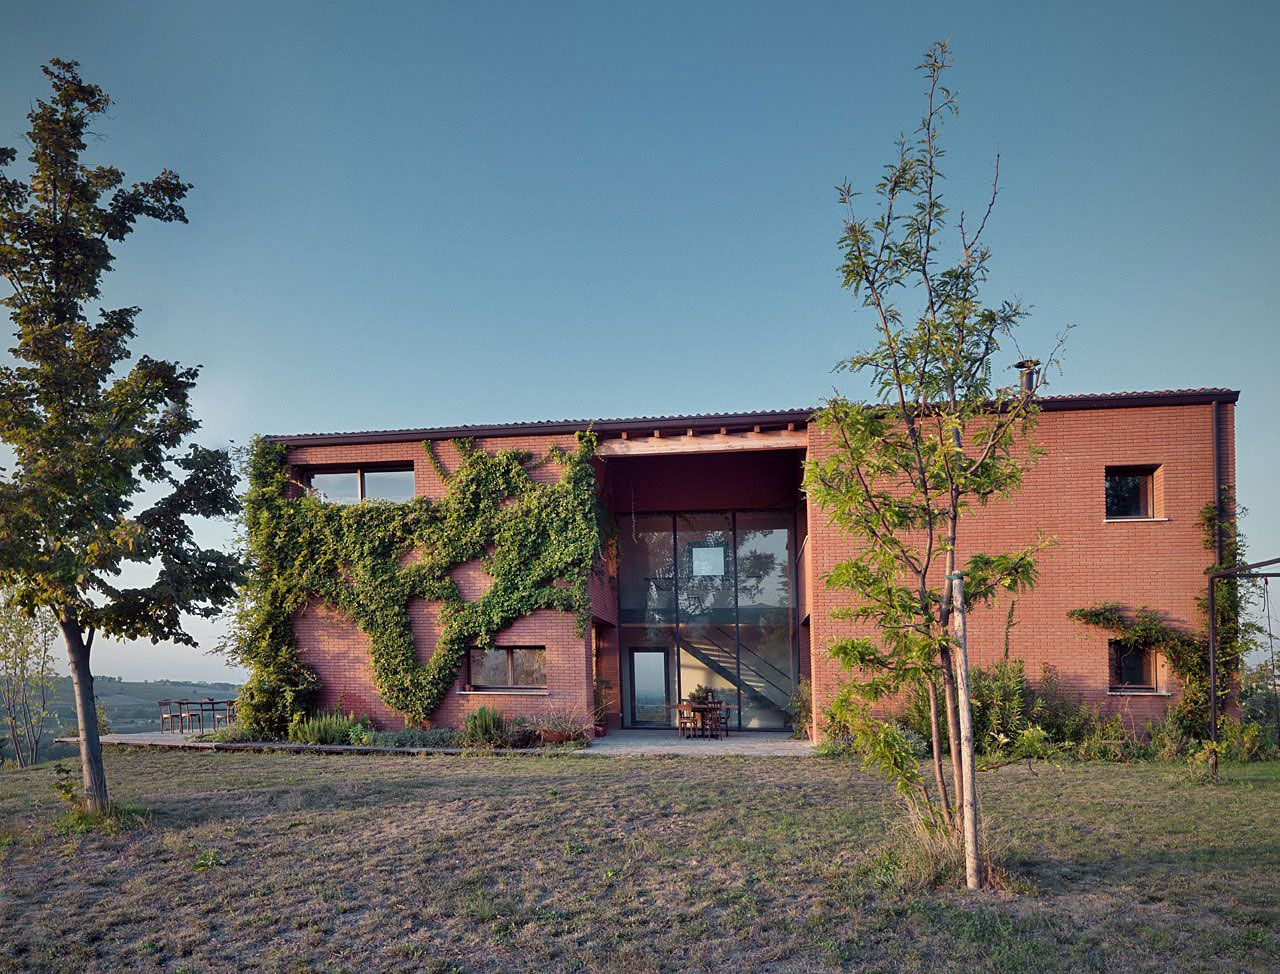 Countryhouse-in-Val-Tidone-01